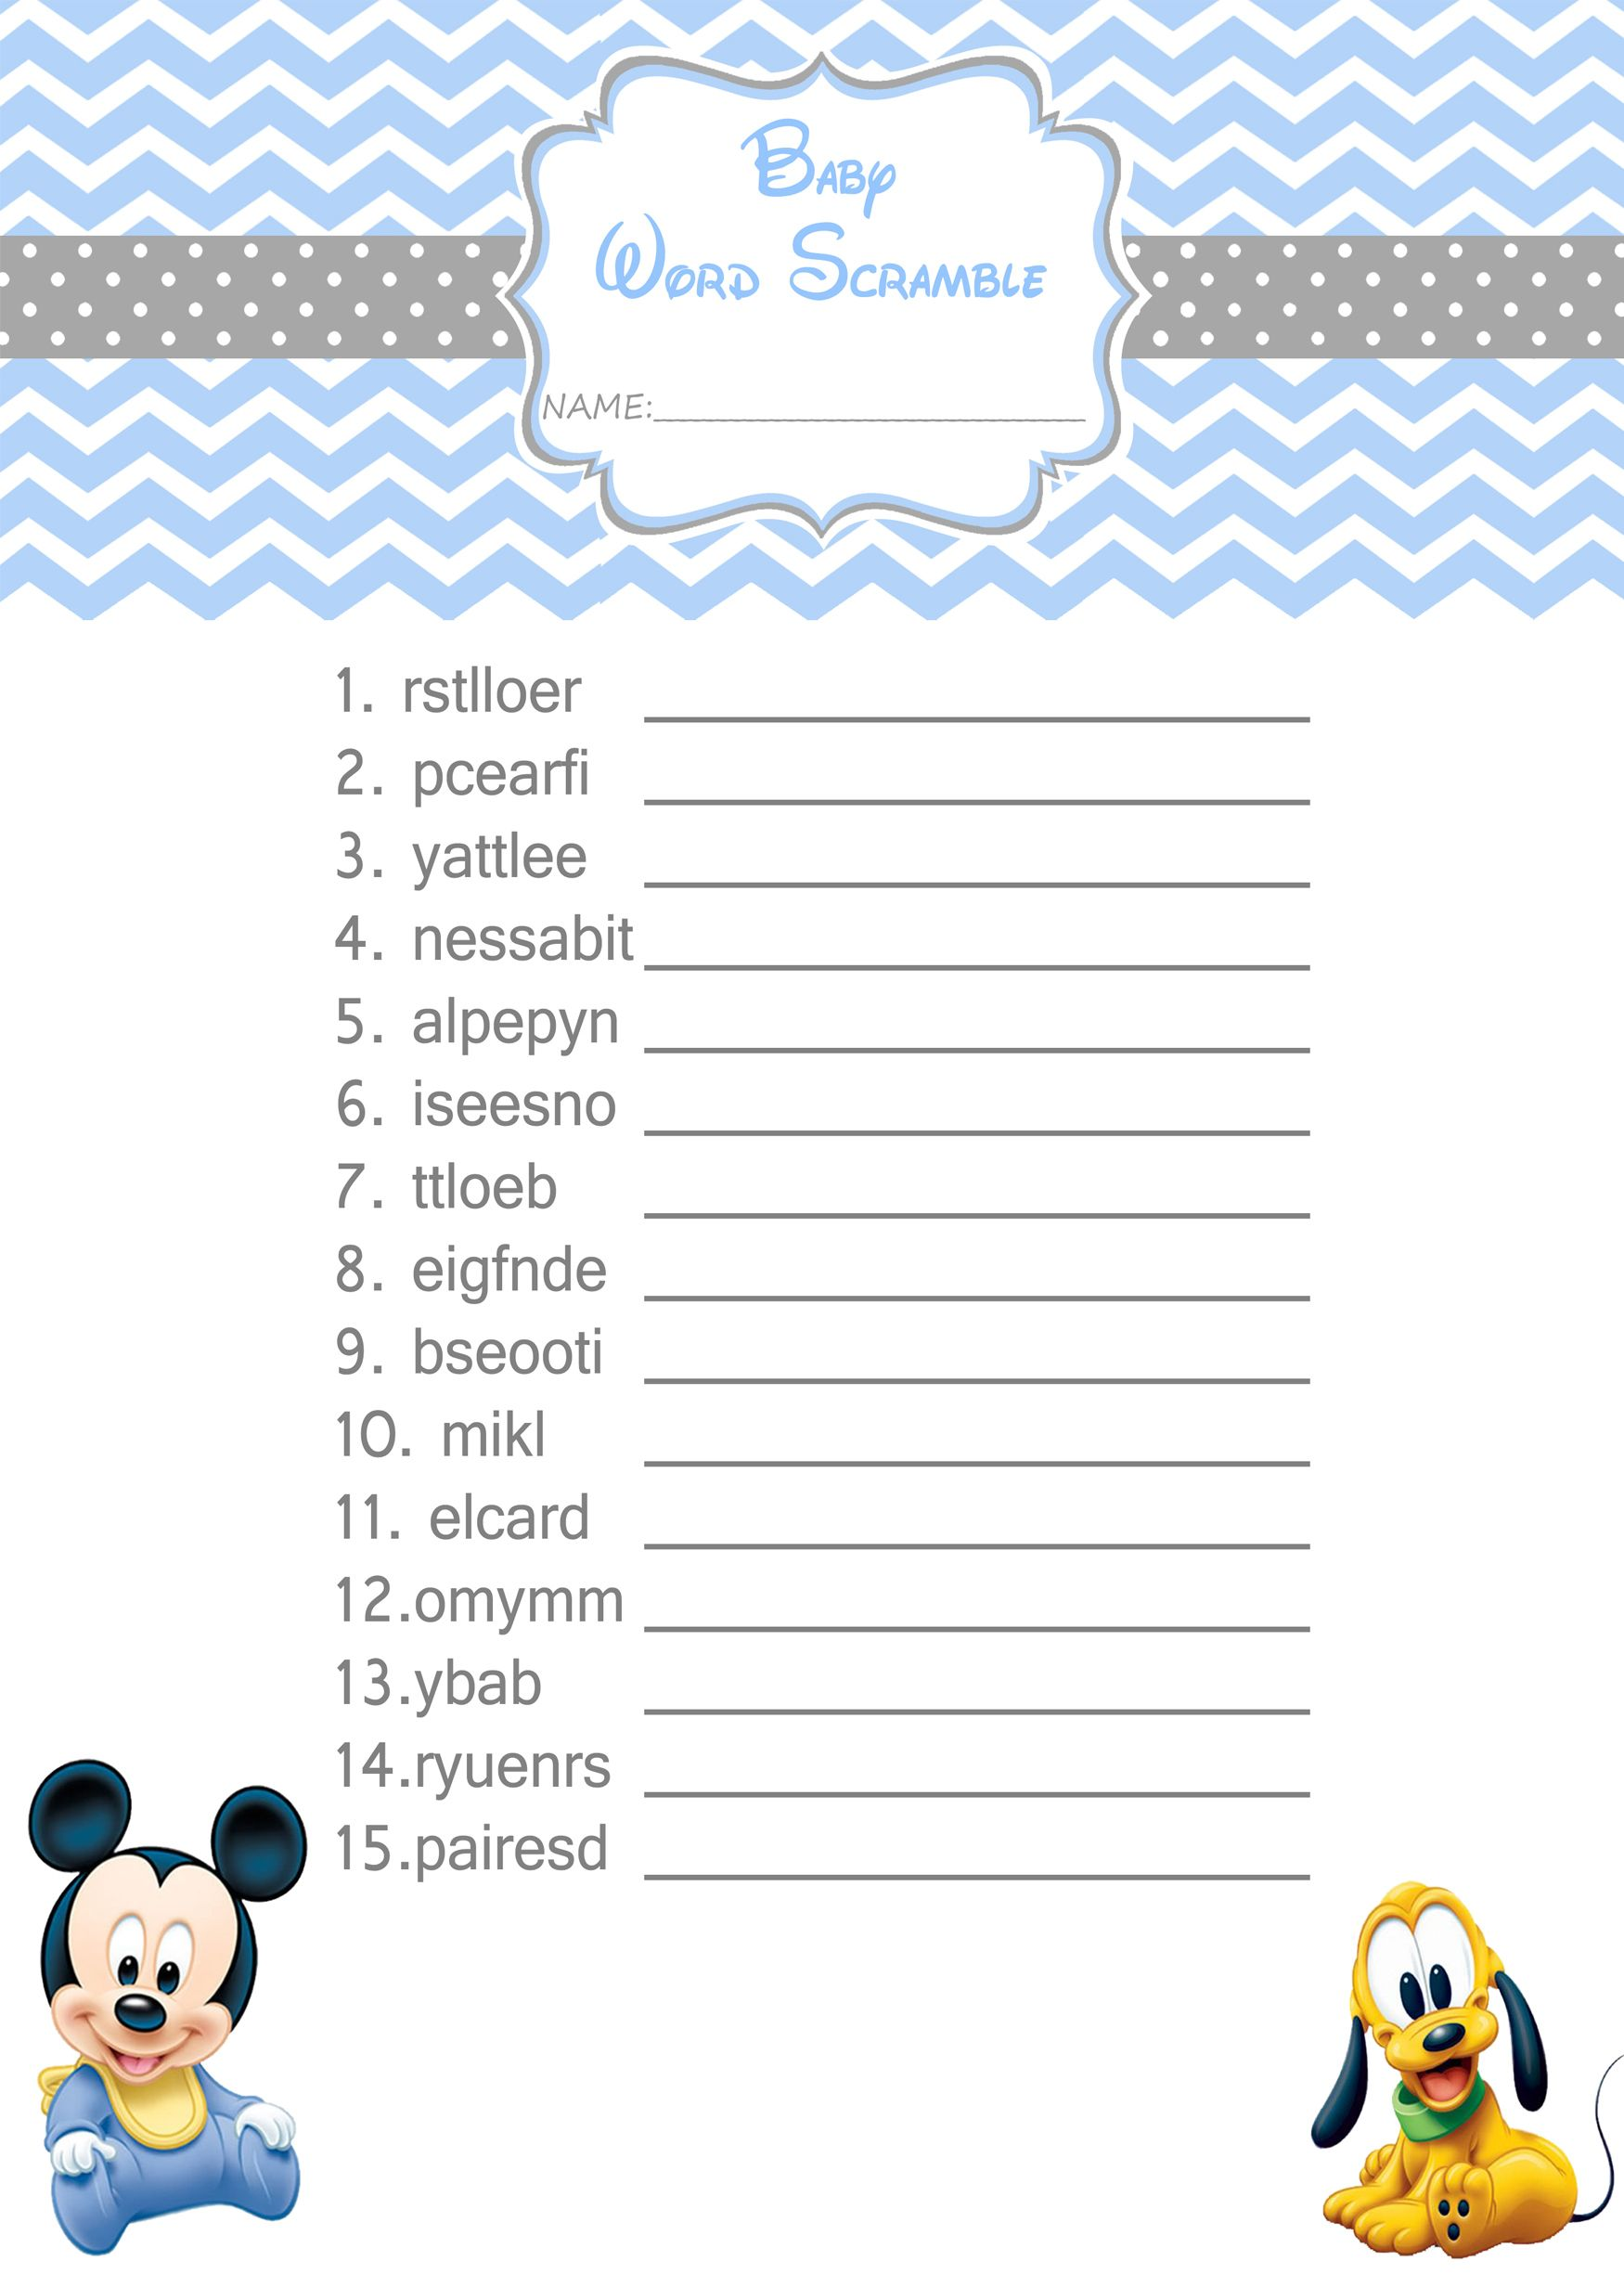 Baby Mickey Mouse Baby shower games Word Scramble $3 99